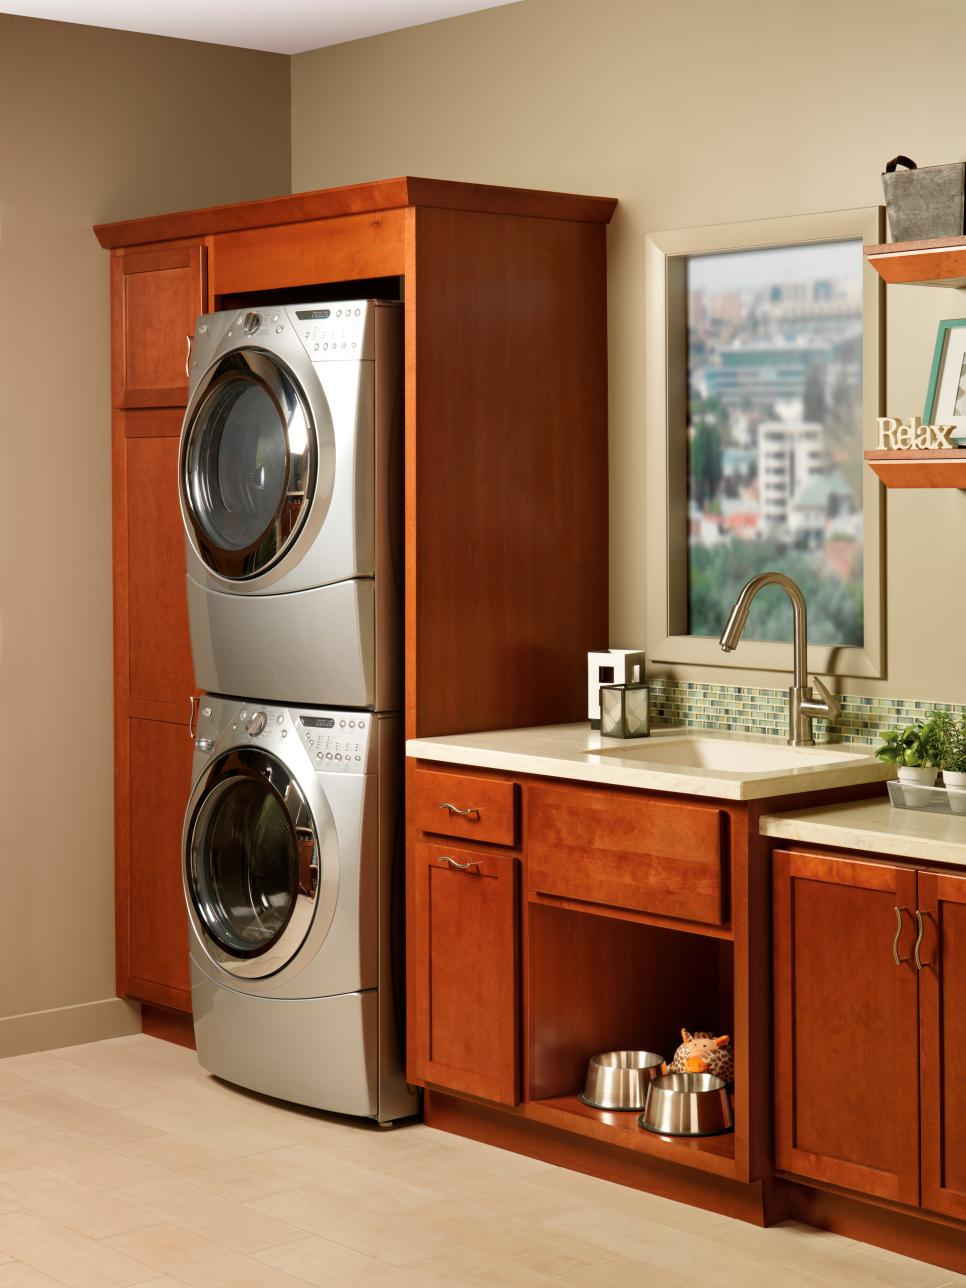 laundry room design ideas | hgtv